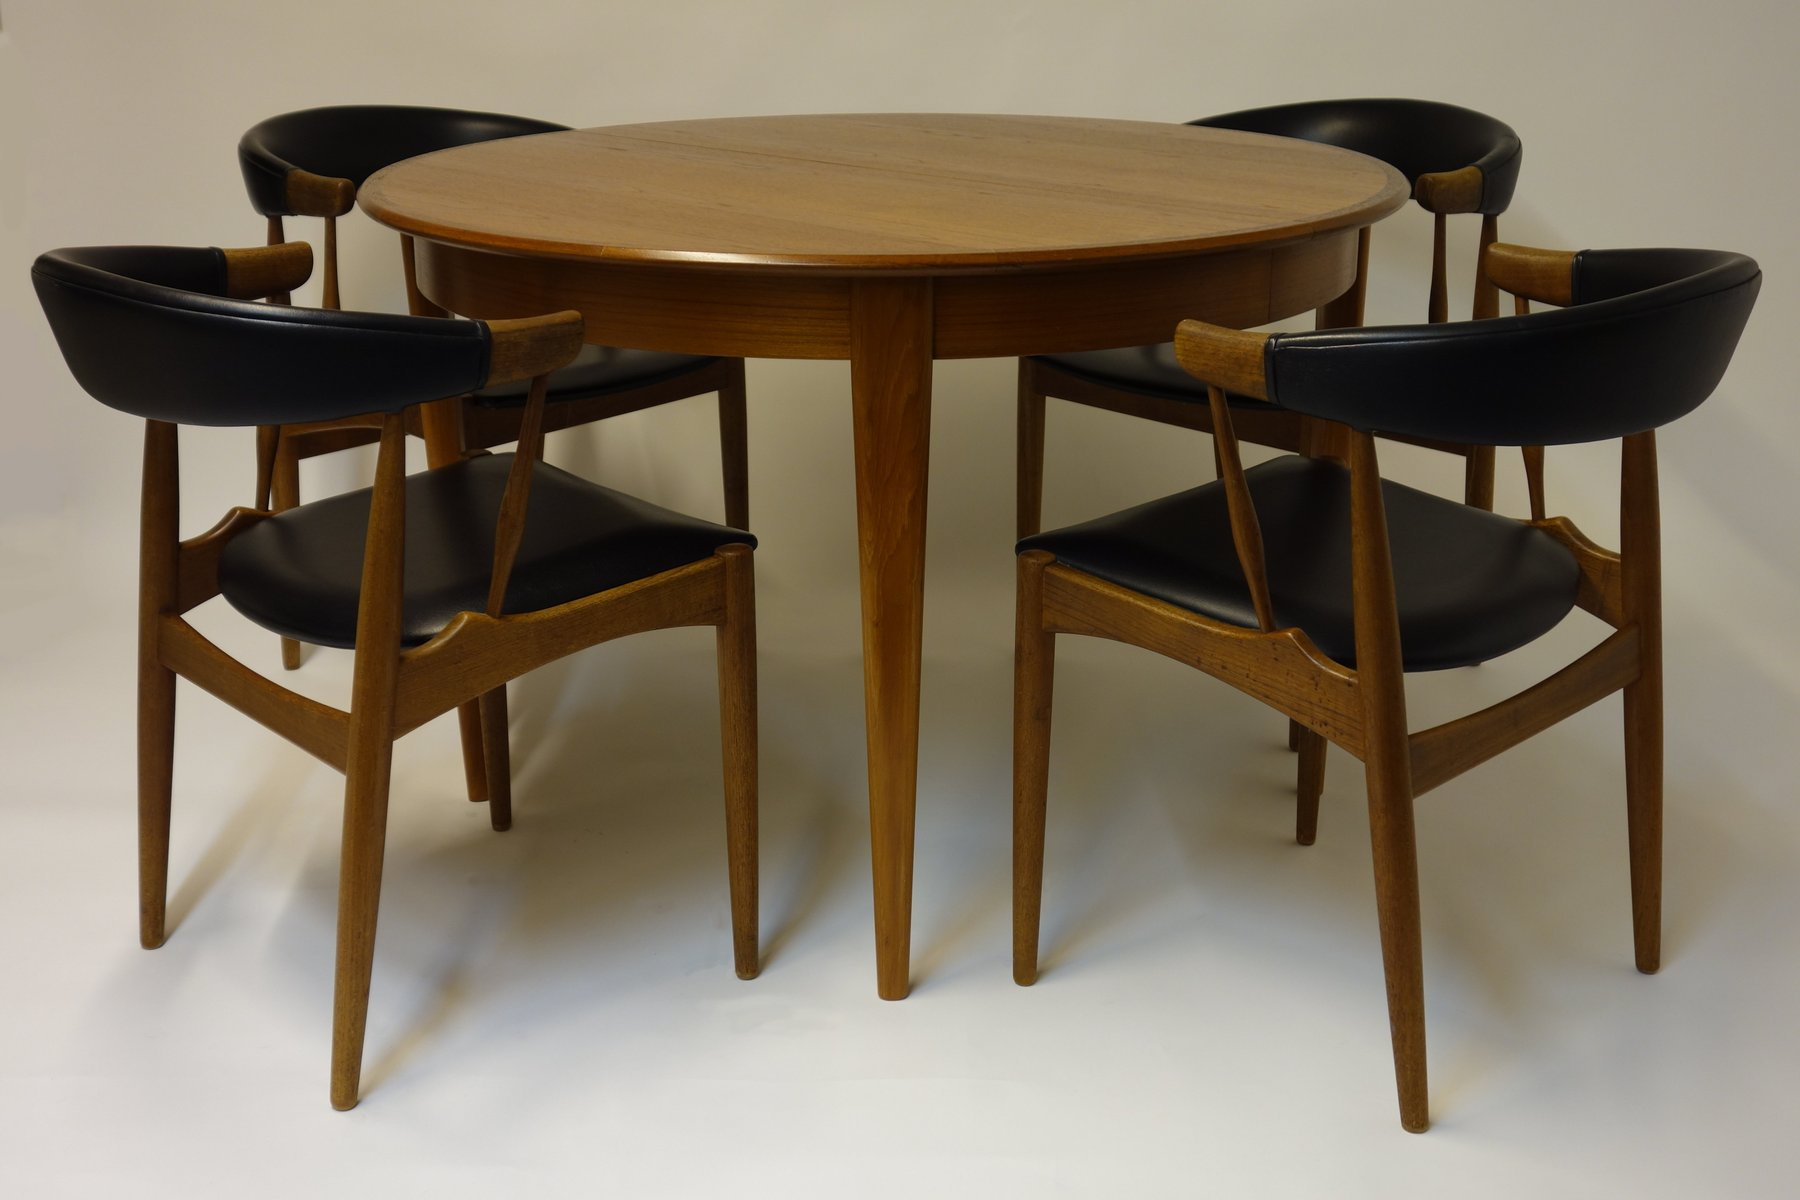 table de salle manger avec deux rallonges et quatre chaises de brdr andersen 1966 en vente. Black Bedroom Furniture Sets. Home Design Ideas